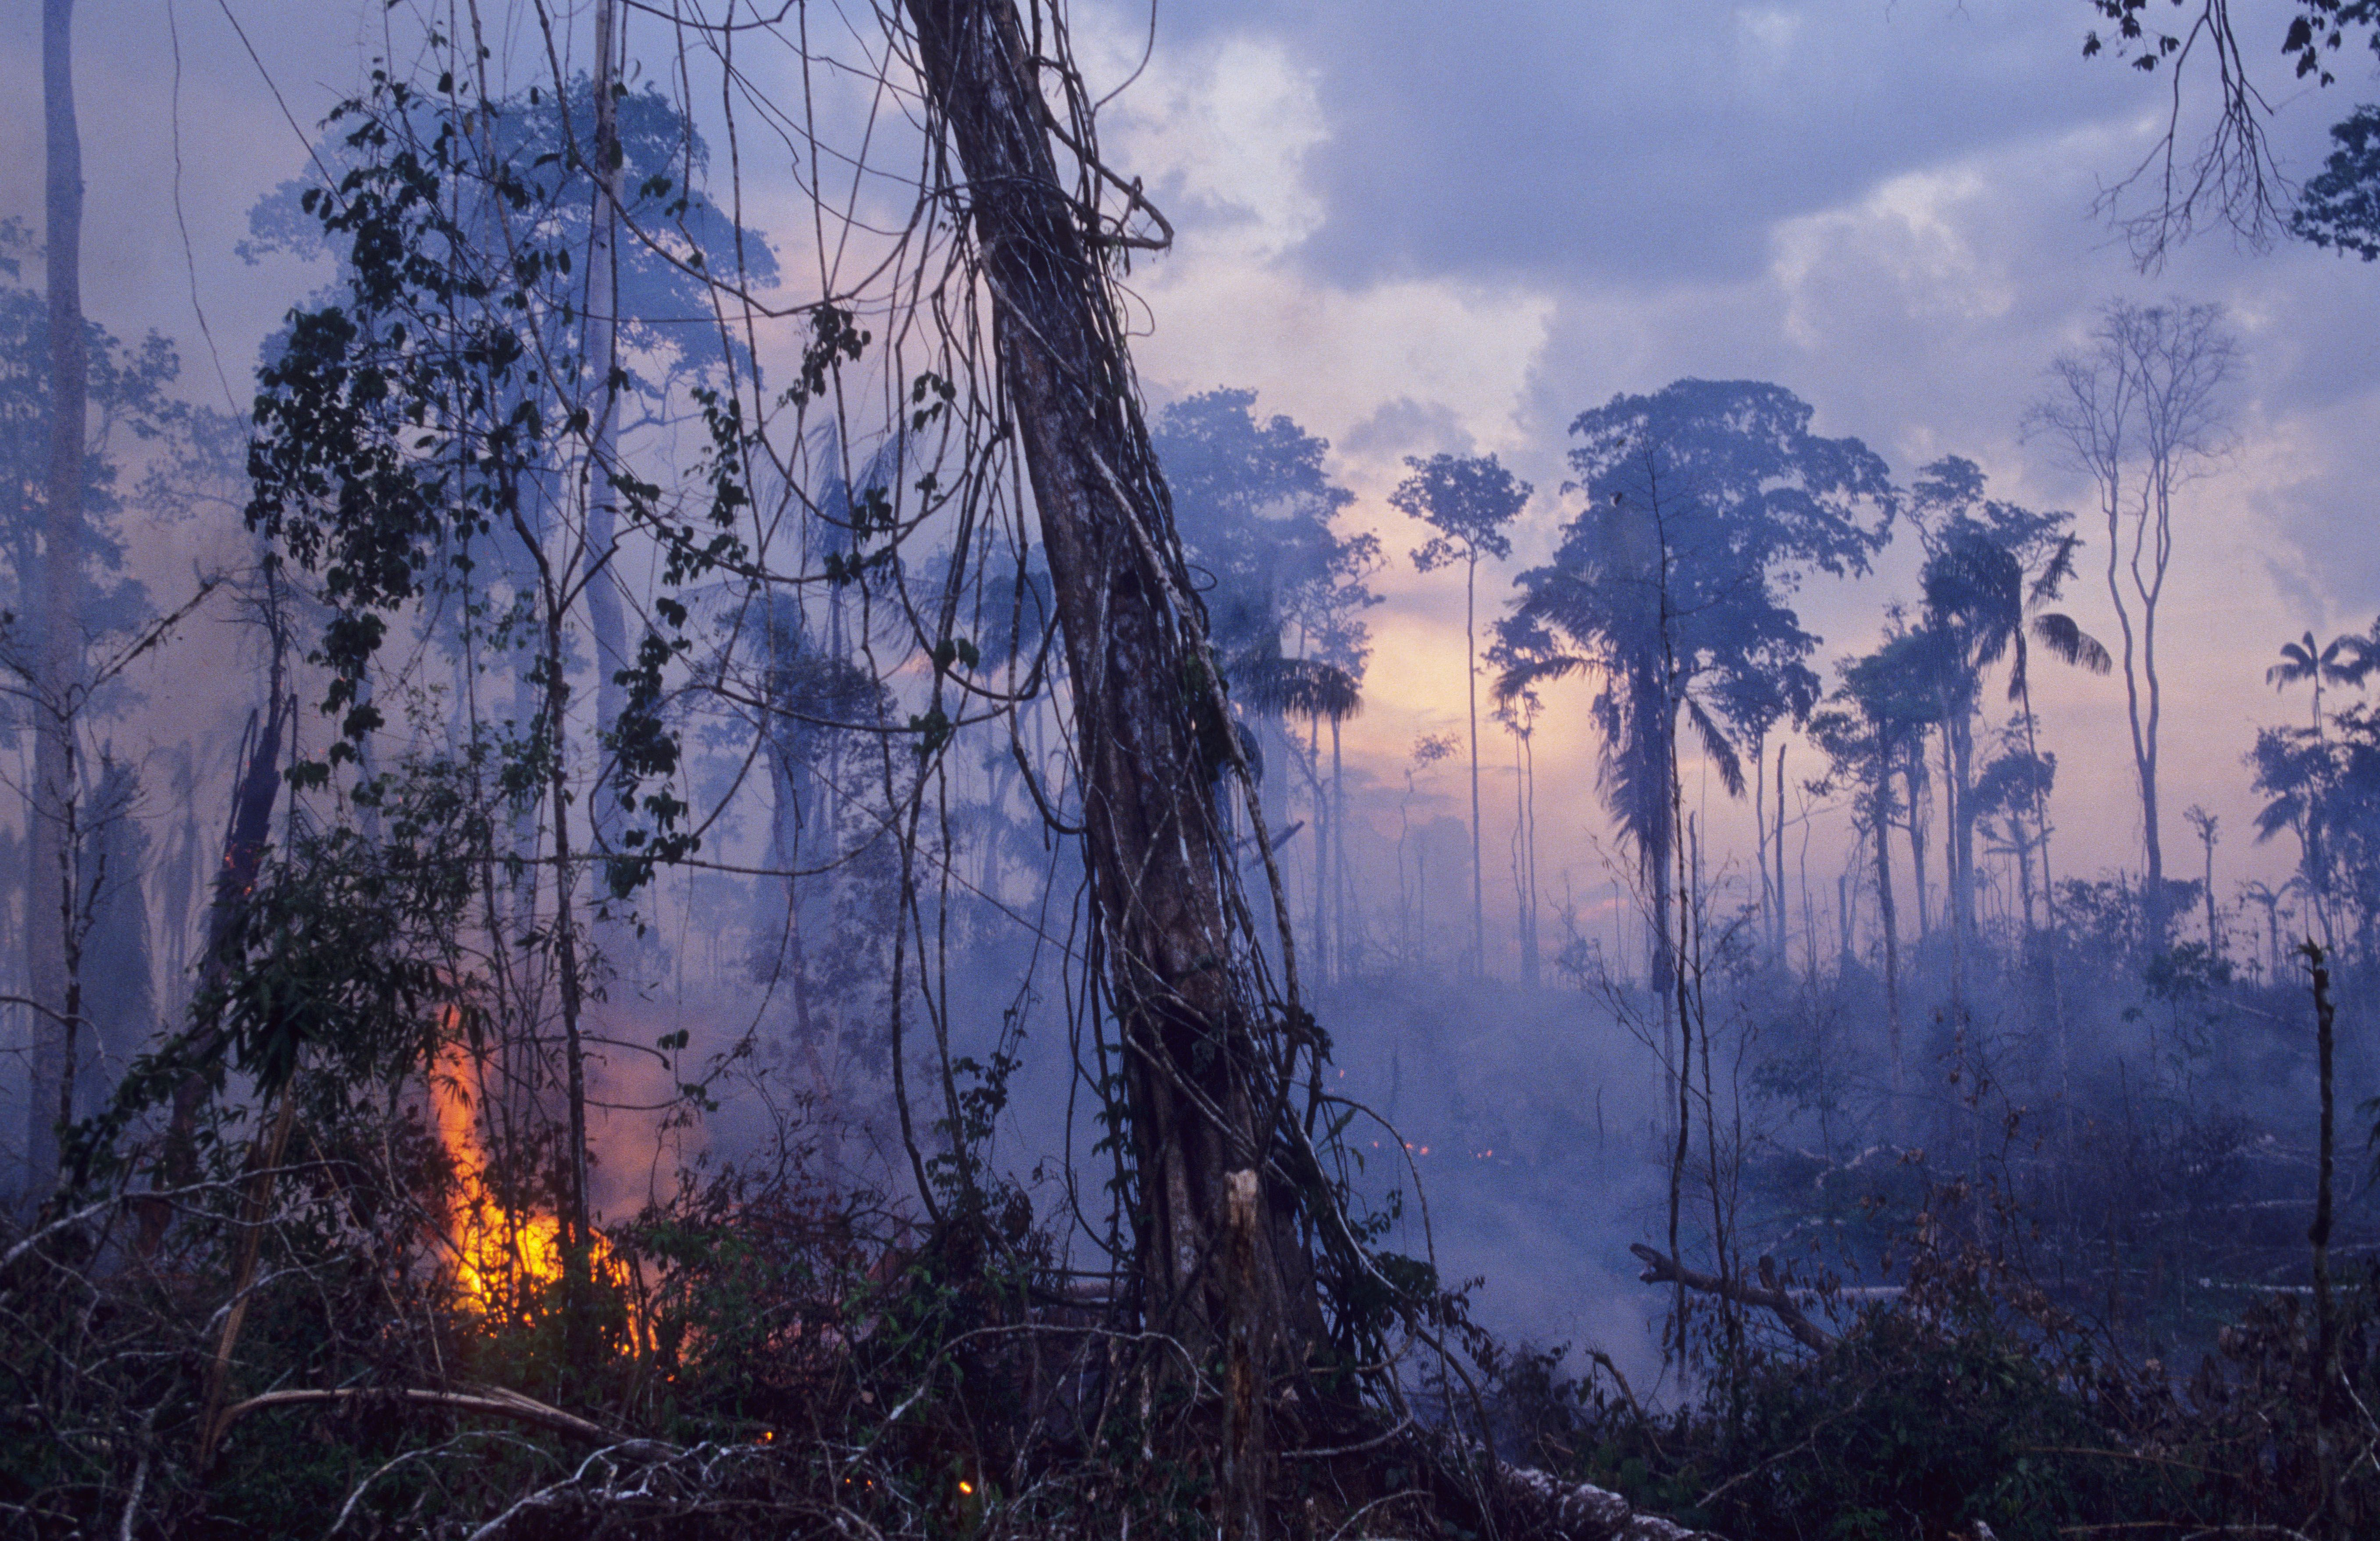 The Amazon Rainforest Is Burning, and You Can See the Damage From Space